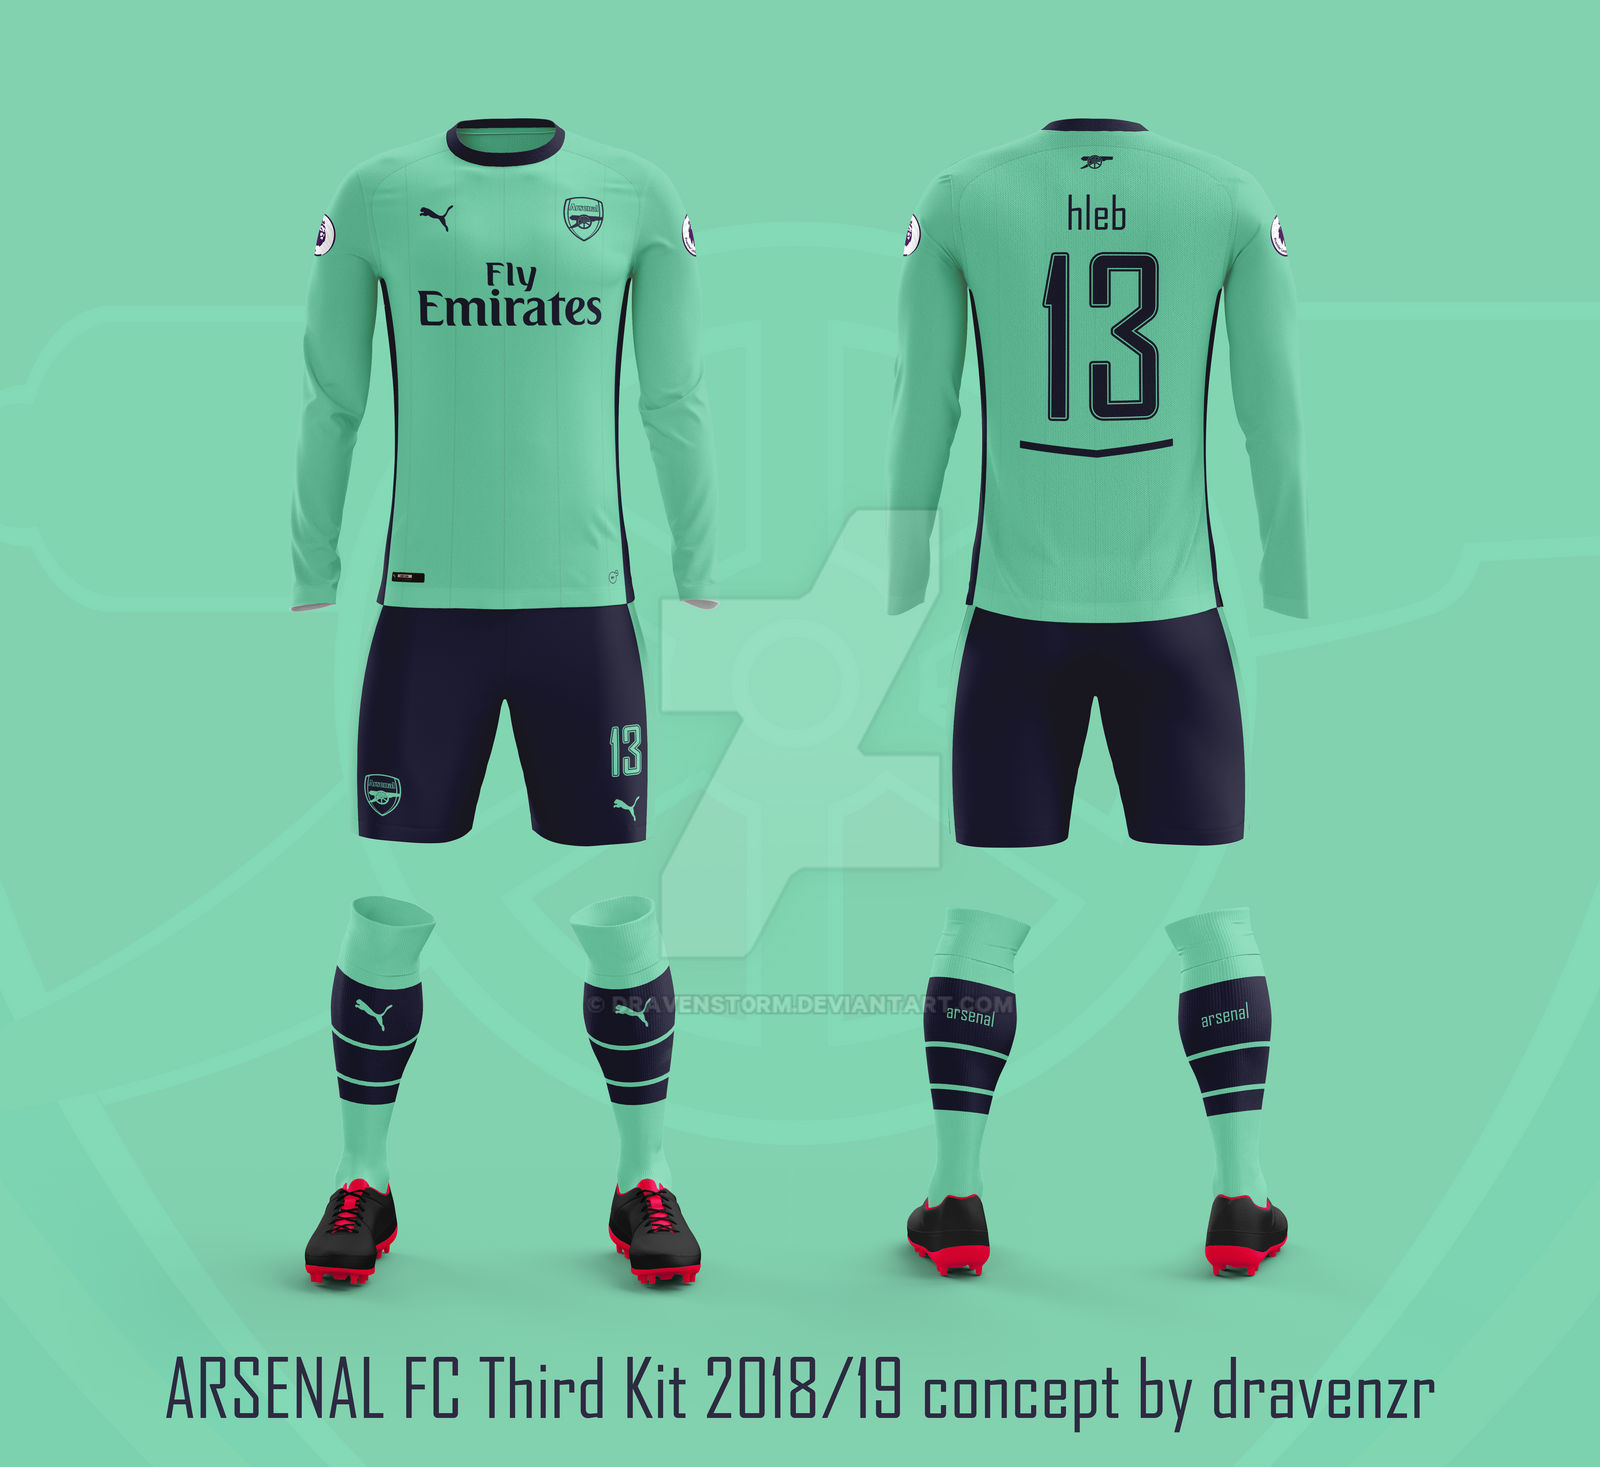 reputable site 48559 a9b86 Arsenal FC Third Kit 2018/19 Concept by Dravenzr by ...